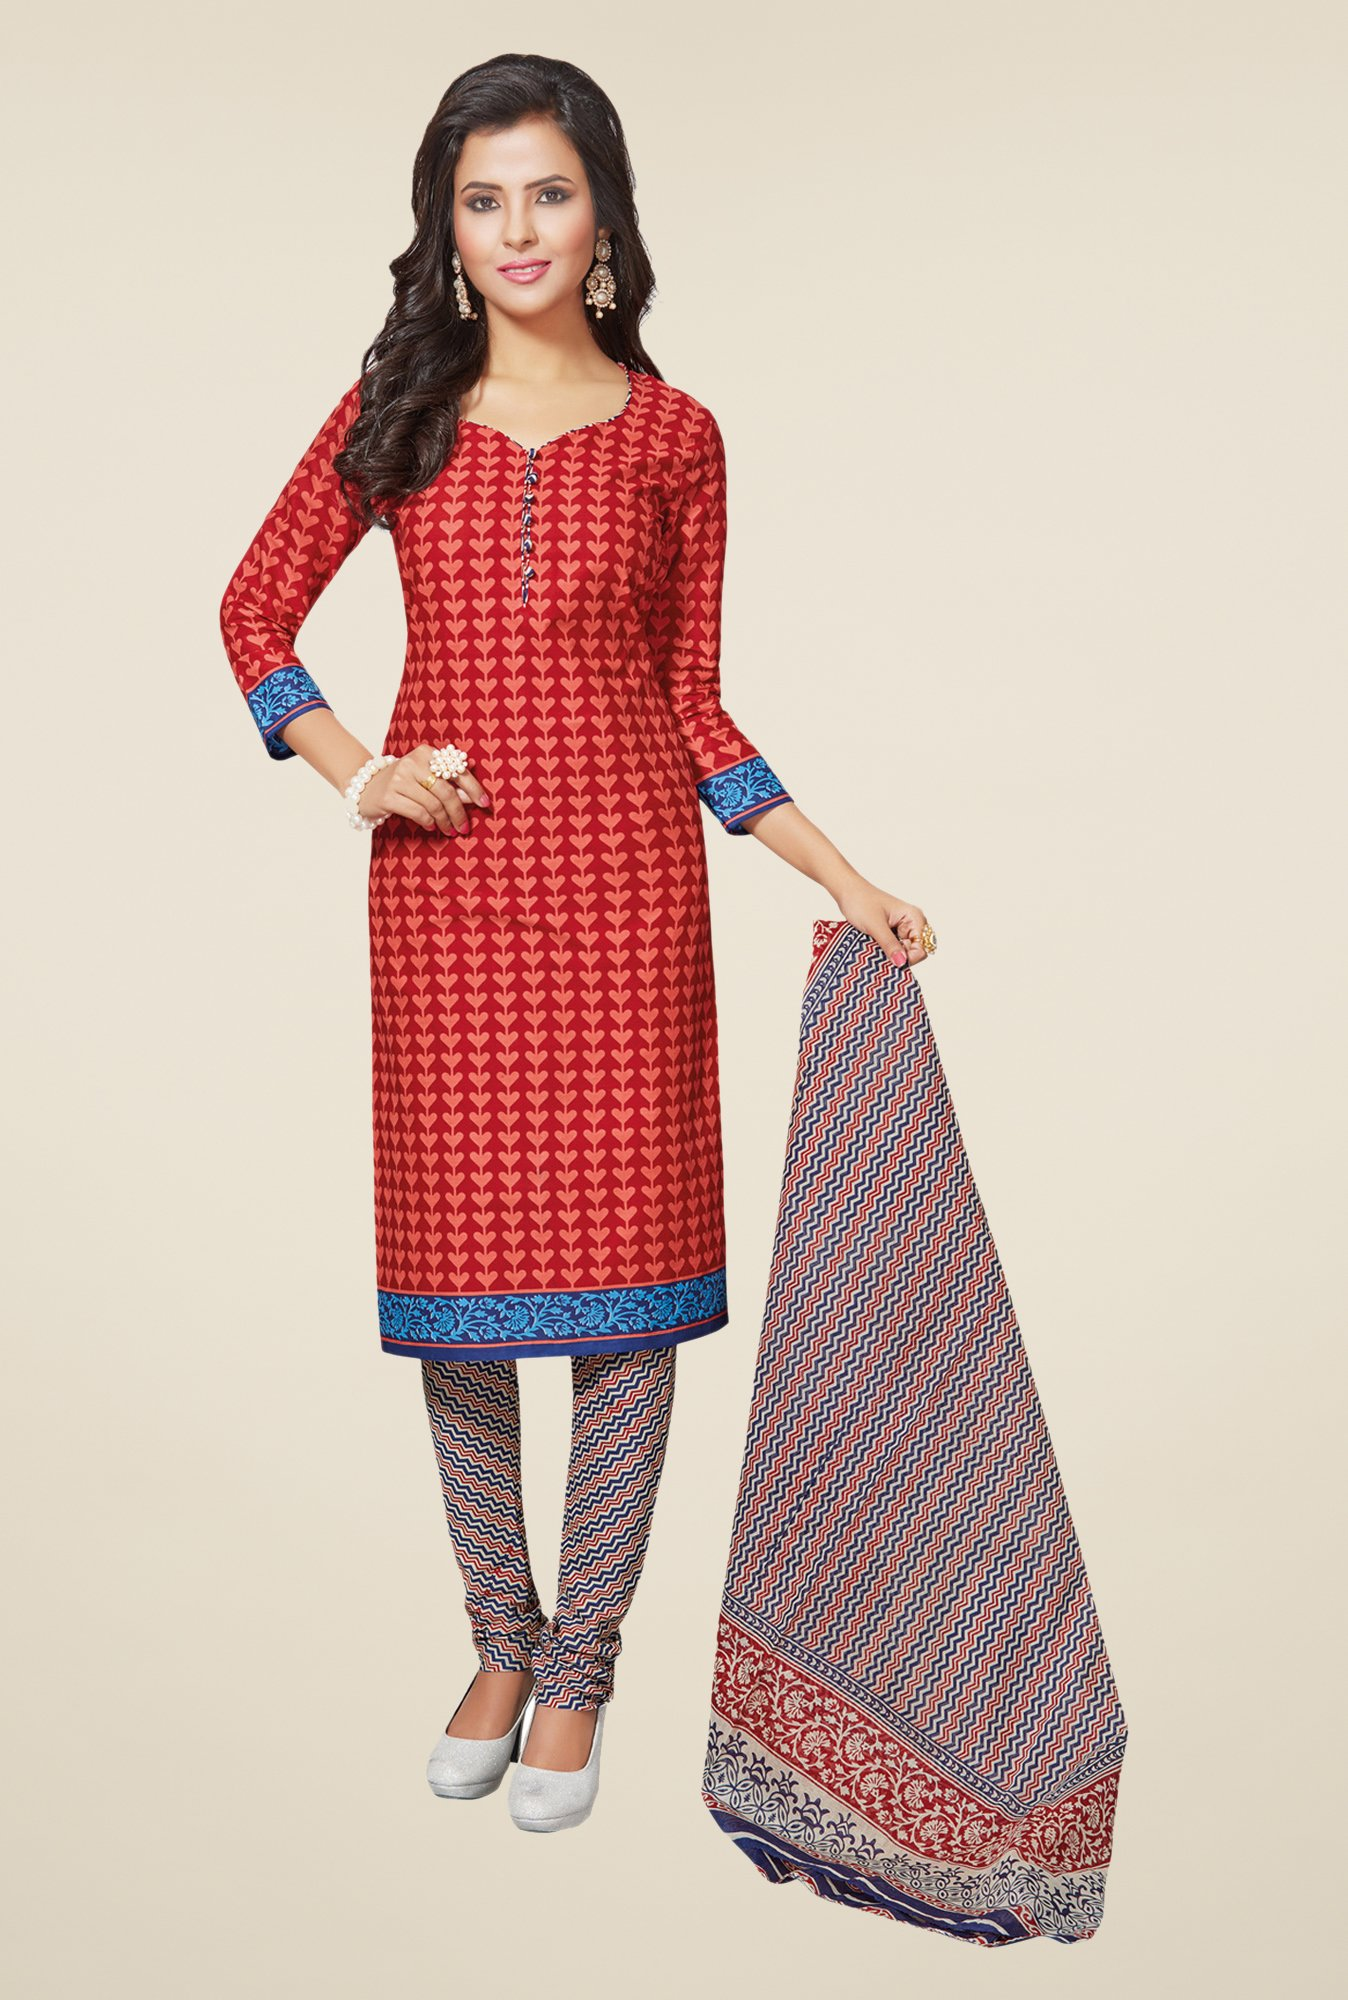 Salwar Studio Red & Blue Printed Dress Material